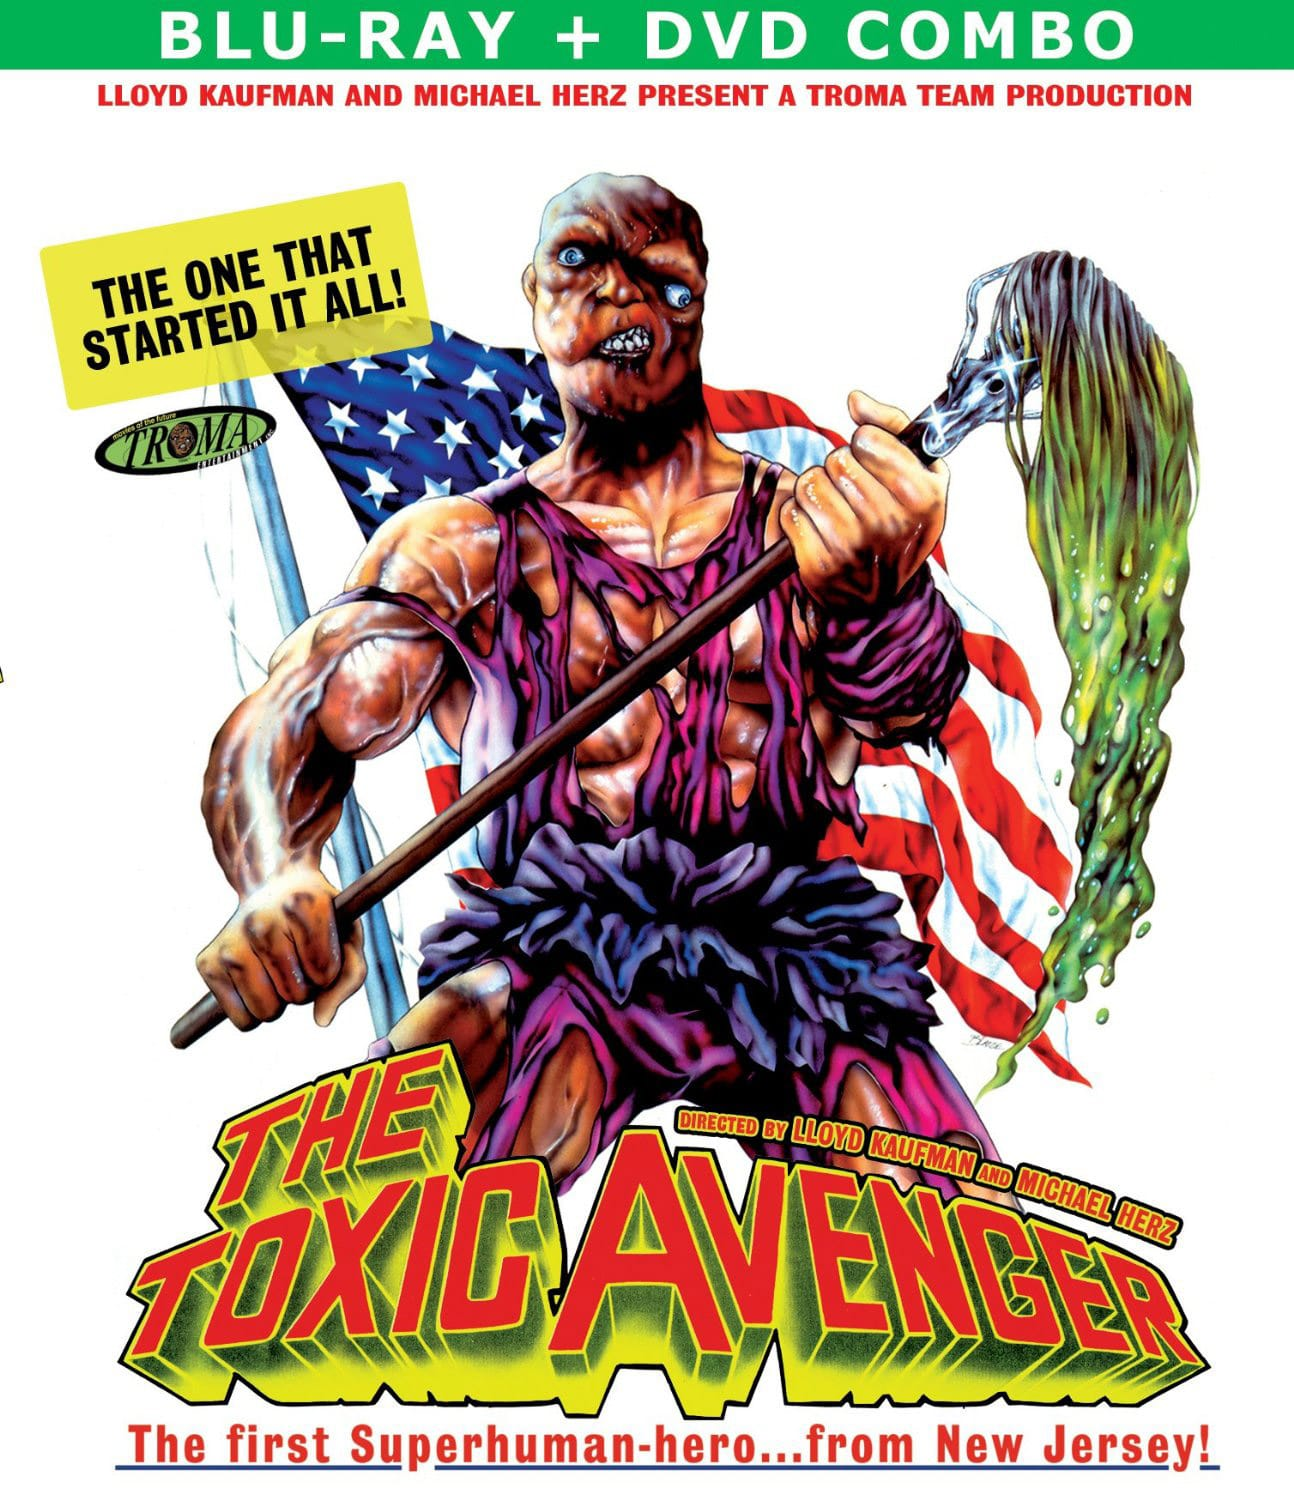 The Toxic Avenger on Blu-ray